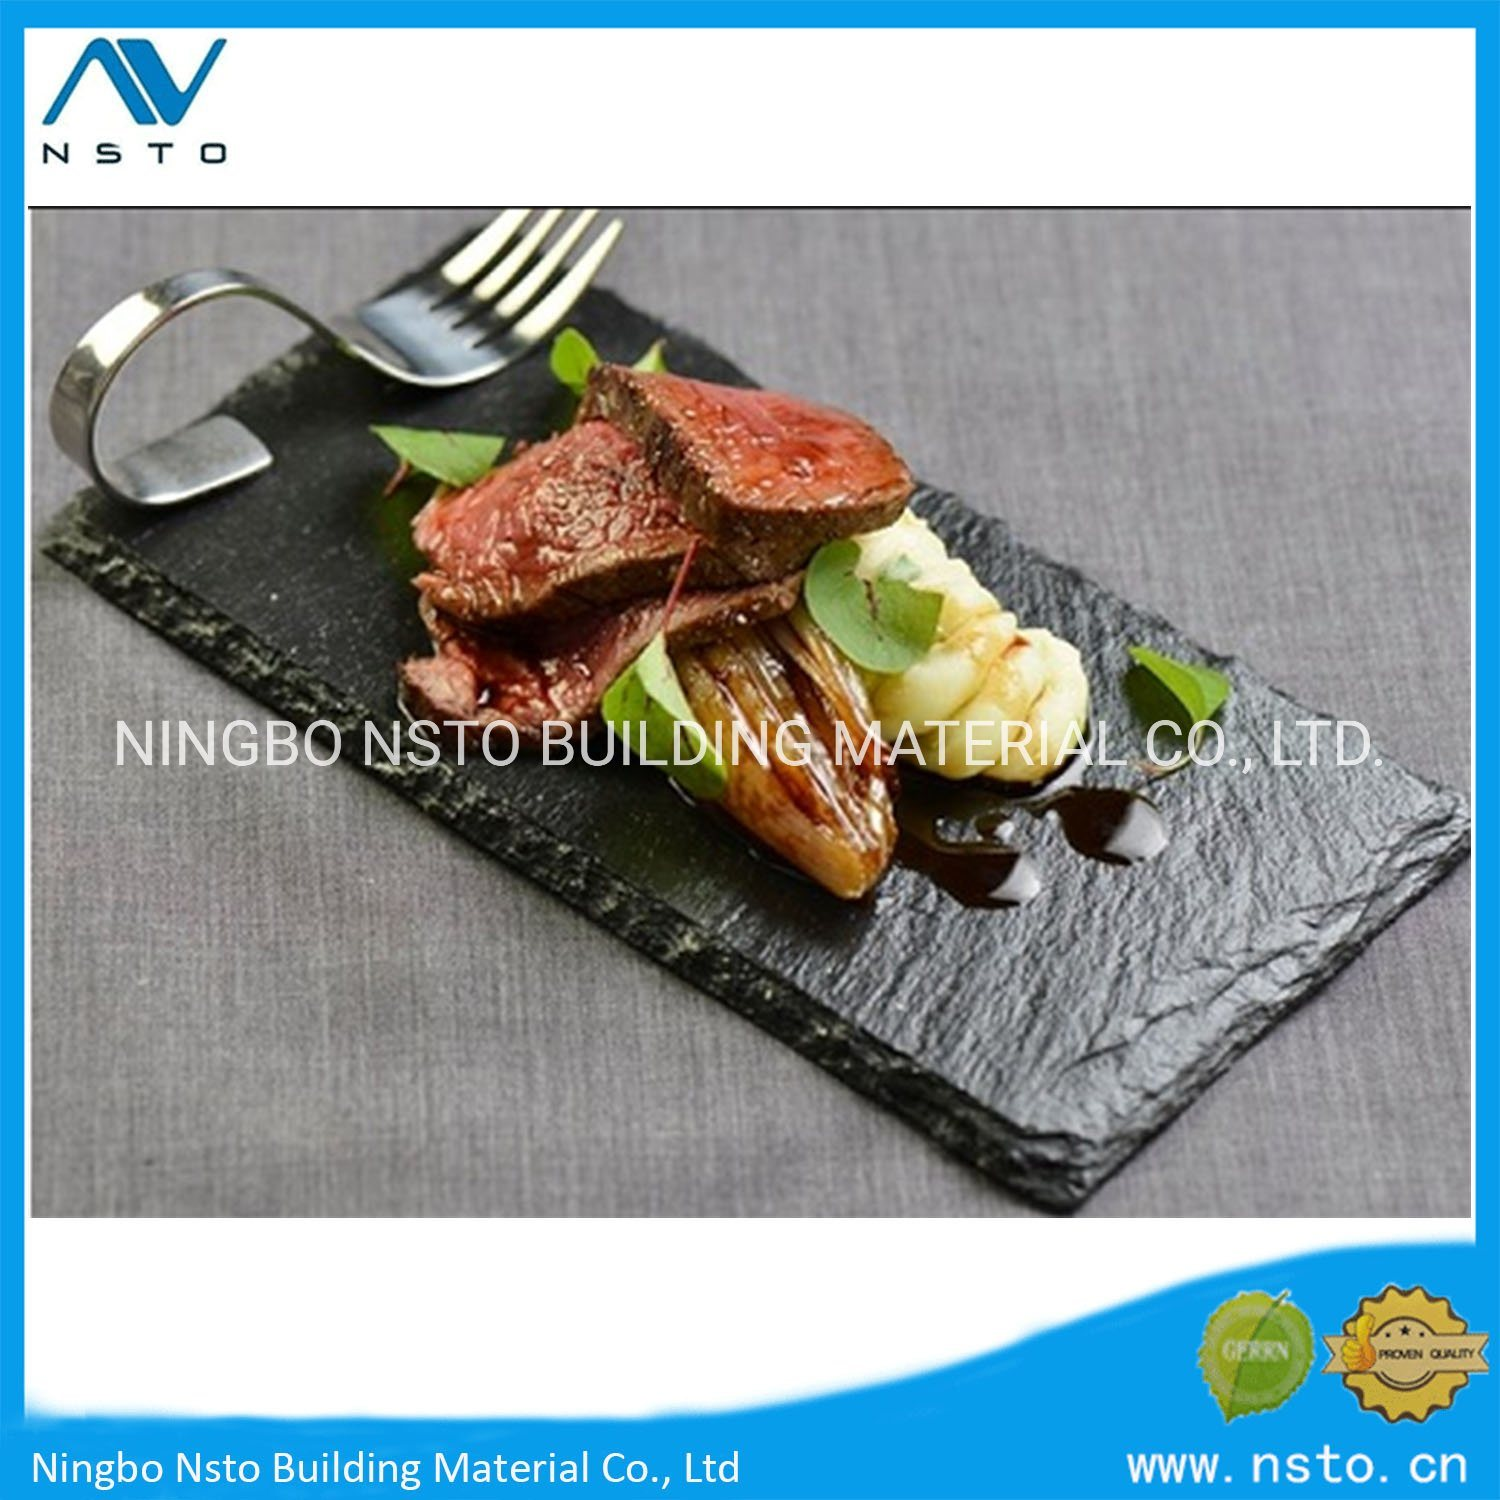 China Natural Stone Kitchen Black Slate Dish Dinner Food Plates Cheese Cutting Board Photos Pictures Made In China Com